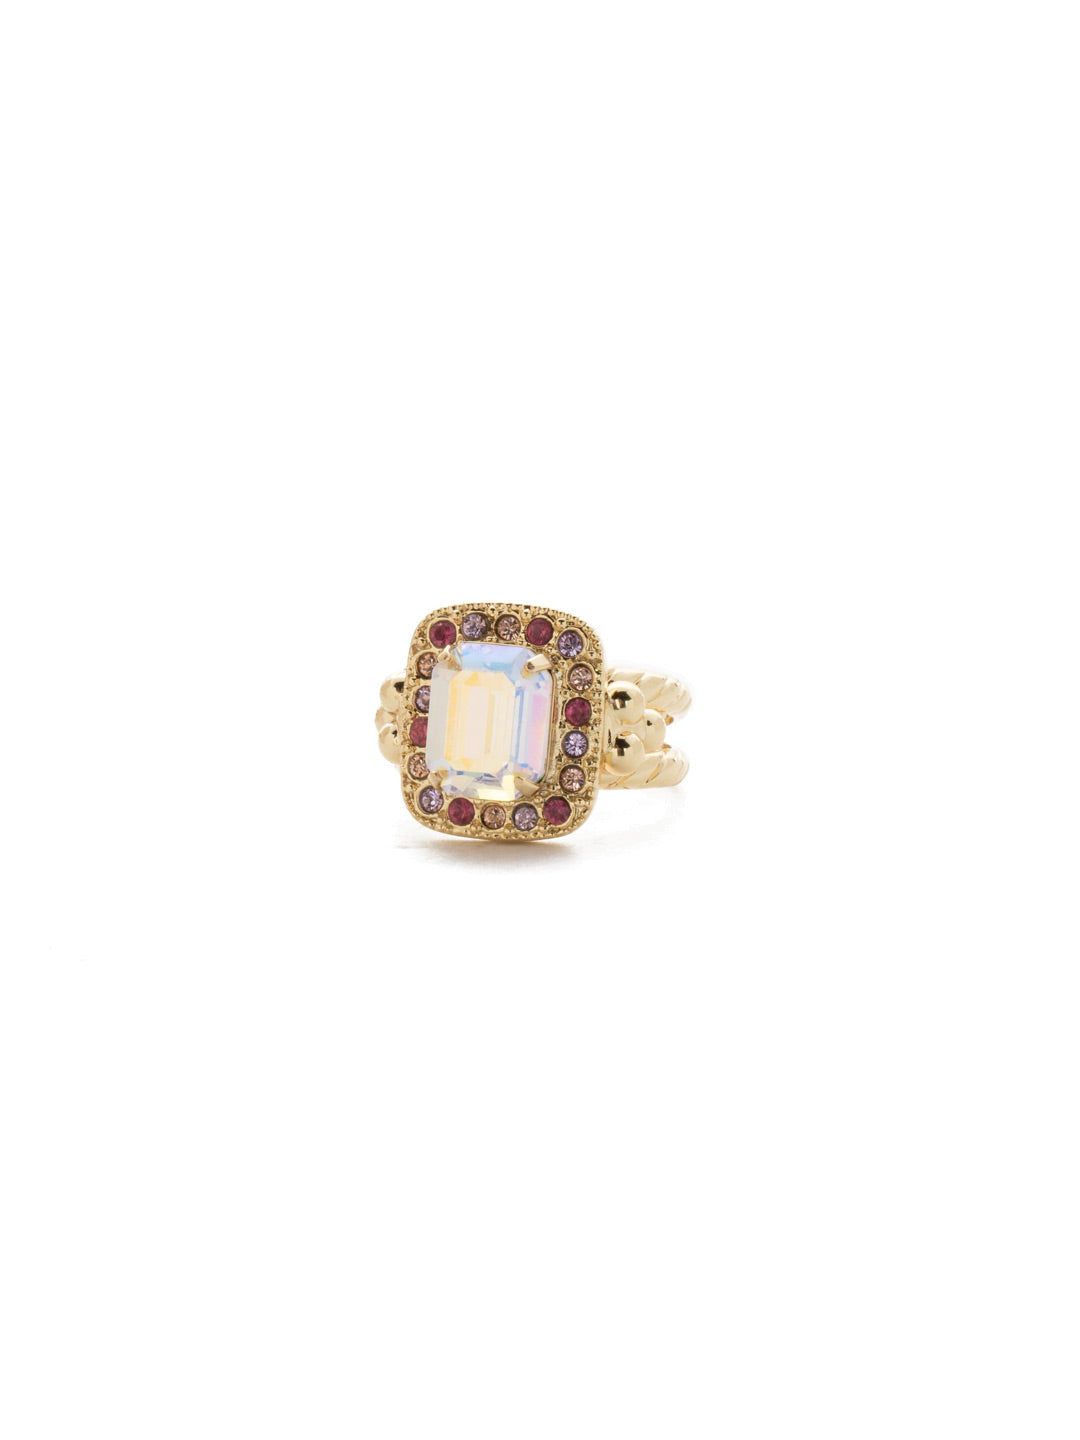 Opulent Octagon Cocktail Ring - RDQ41BGISS